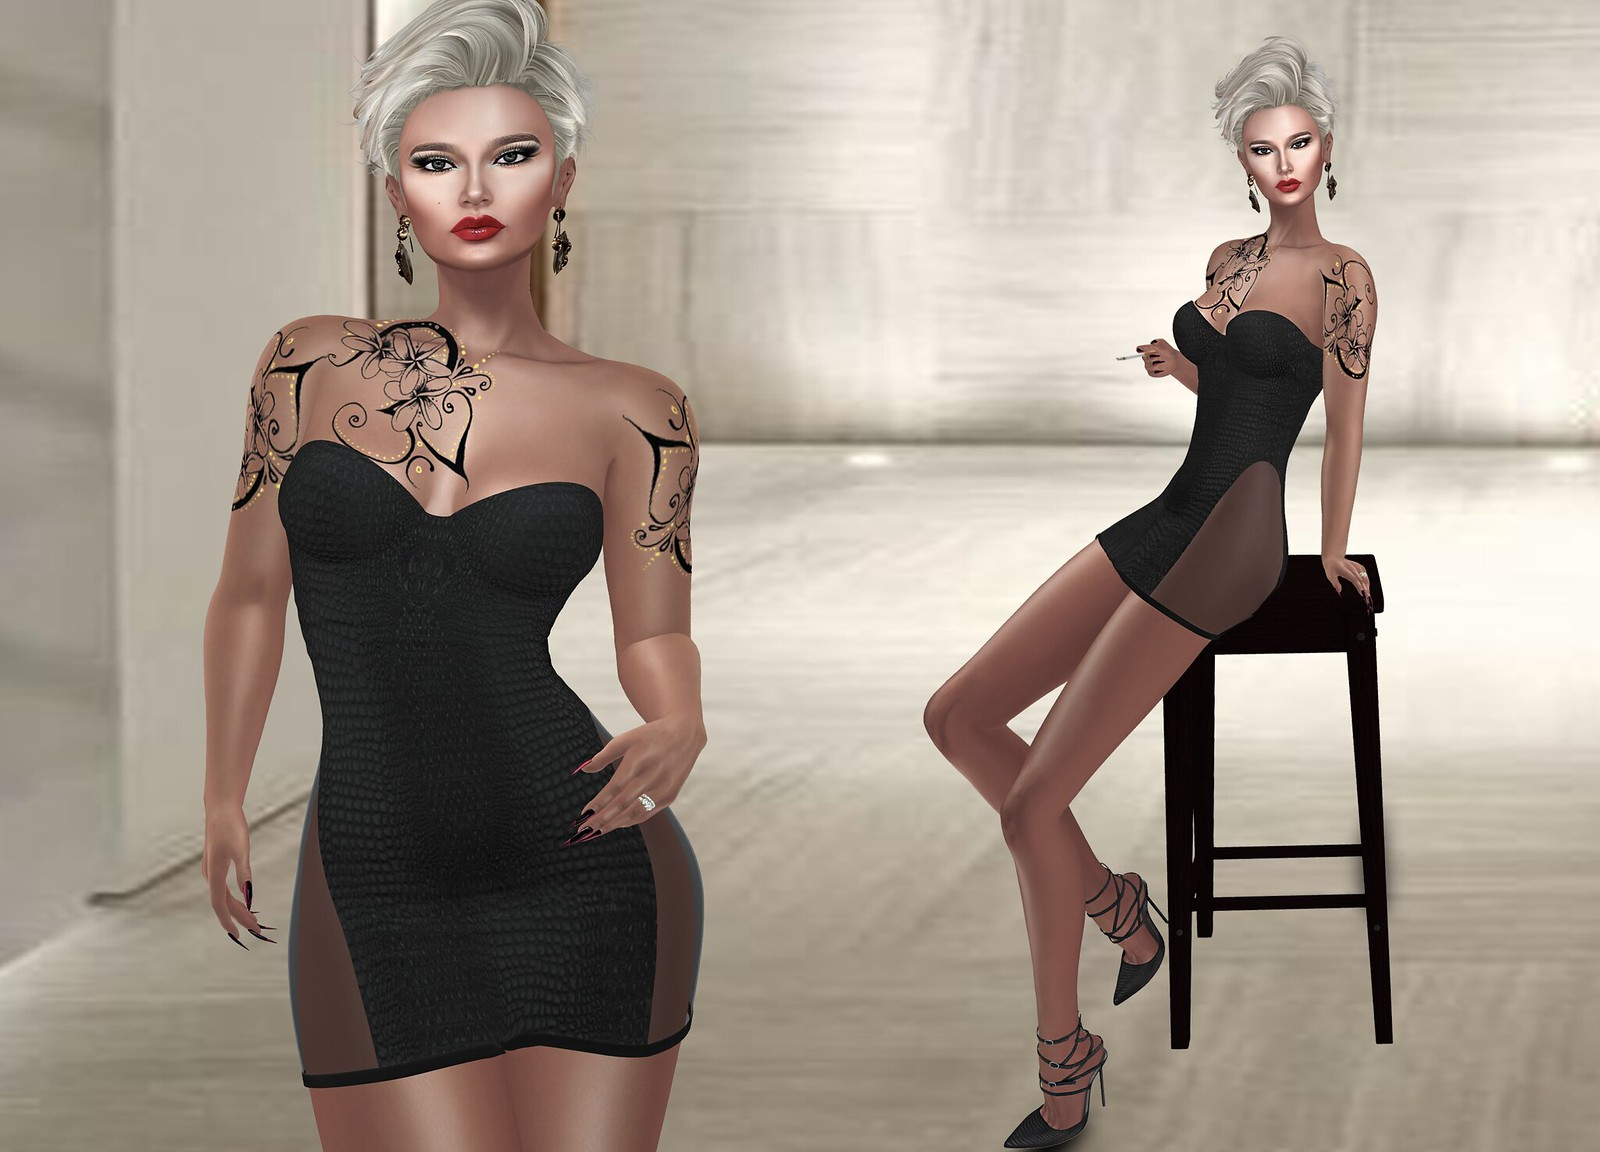 ***GIULIADESIGN*** Designer Showcase